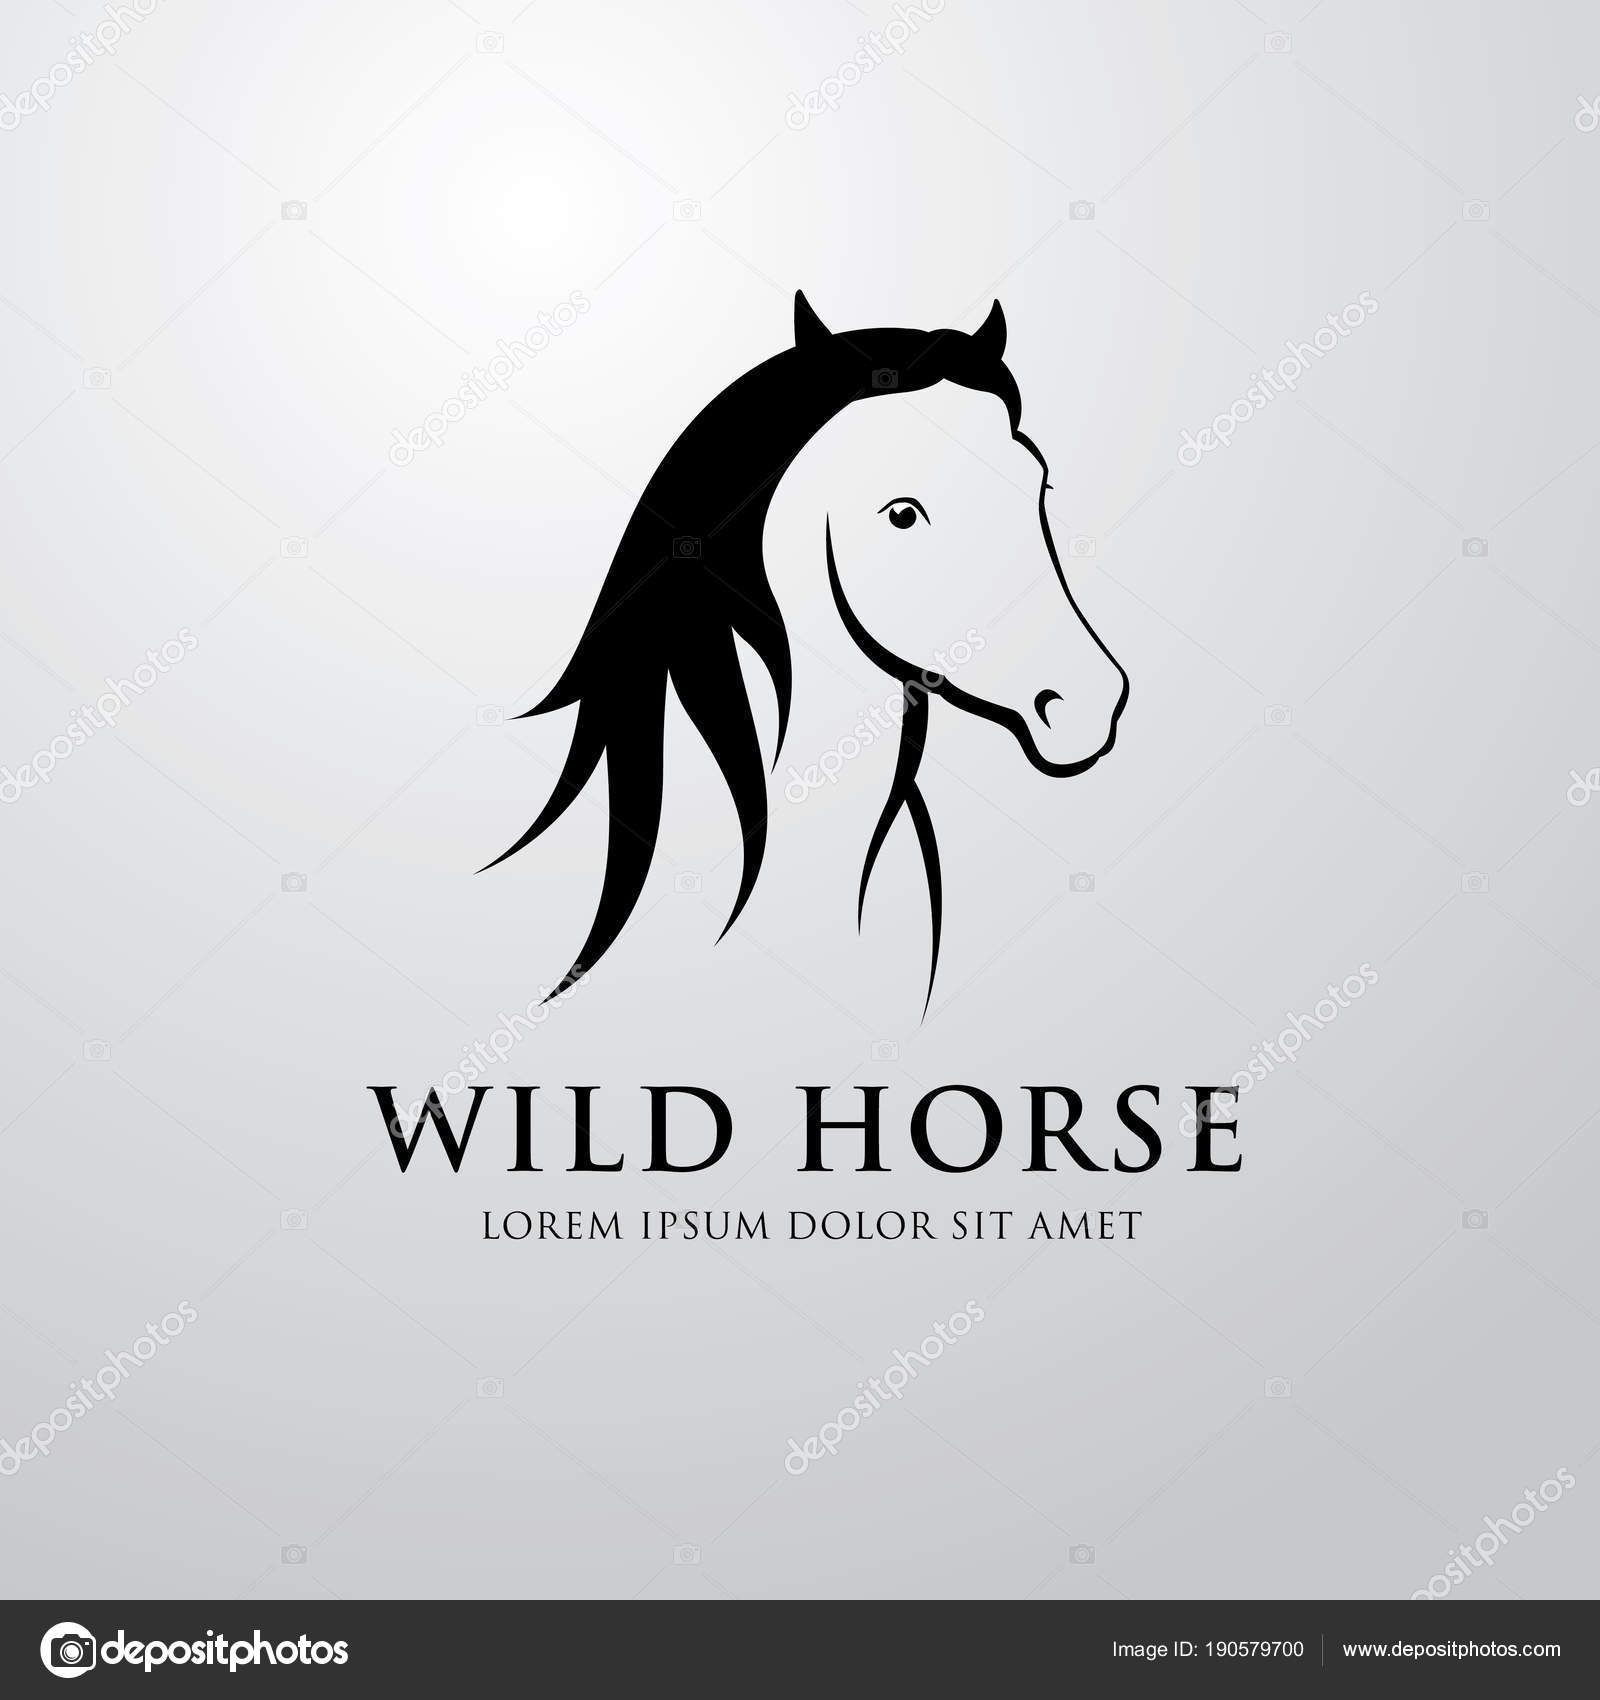 Wild Horse Emblem Gradient Grey Background Stock Vector C Igor Vkv 190579700